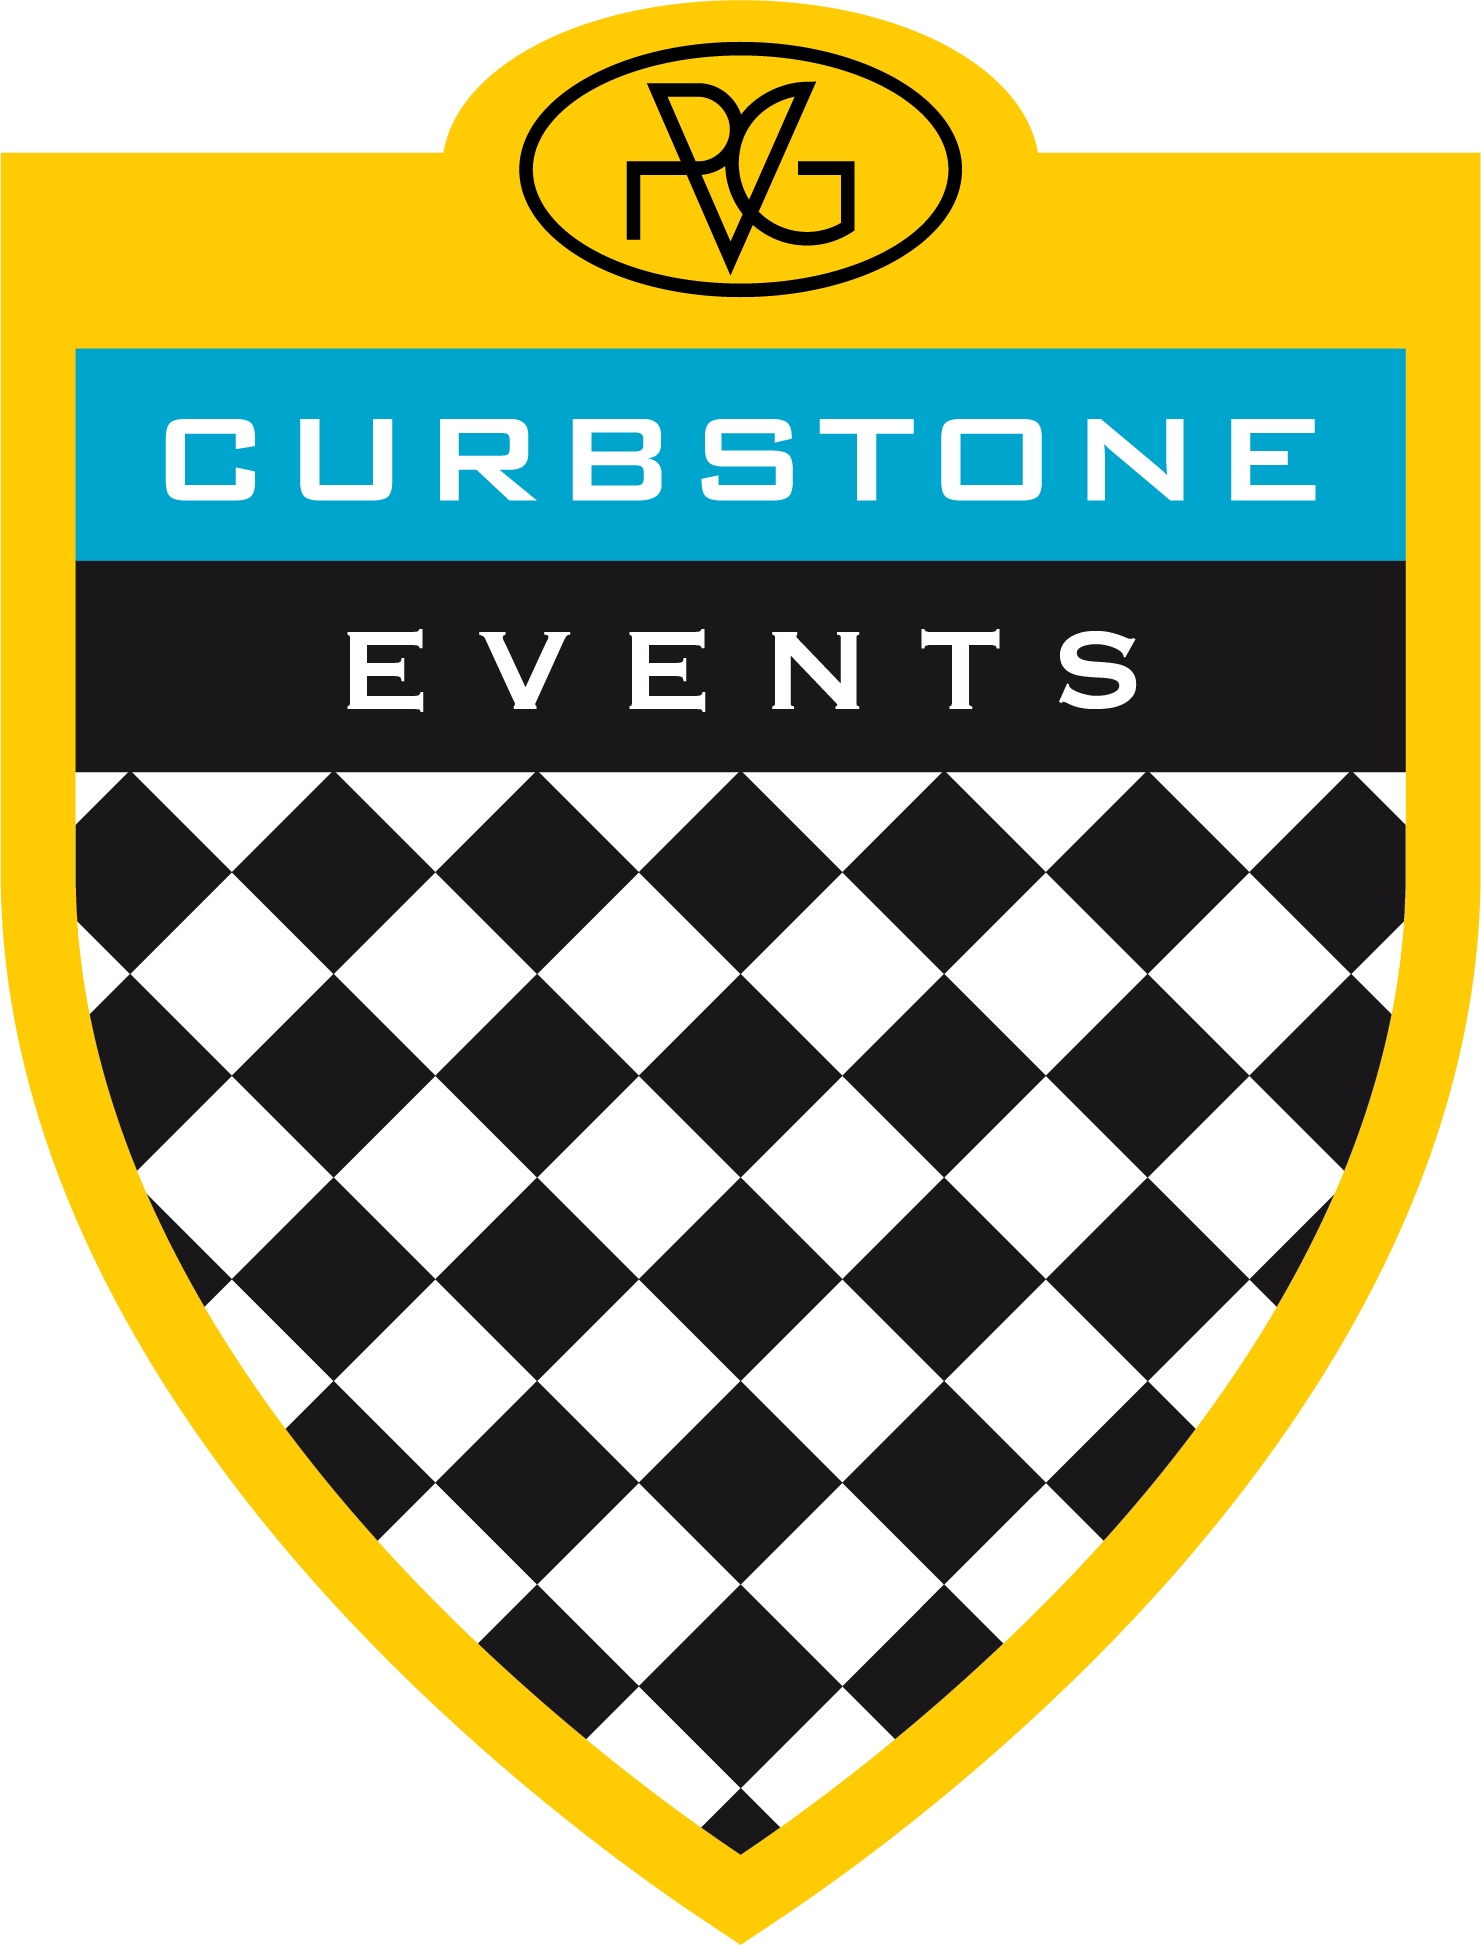 Curbstone Events